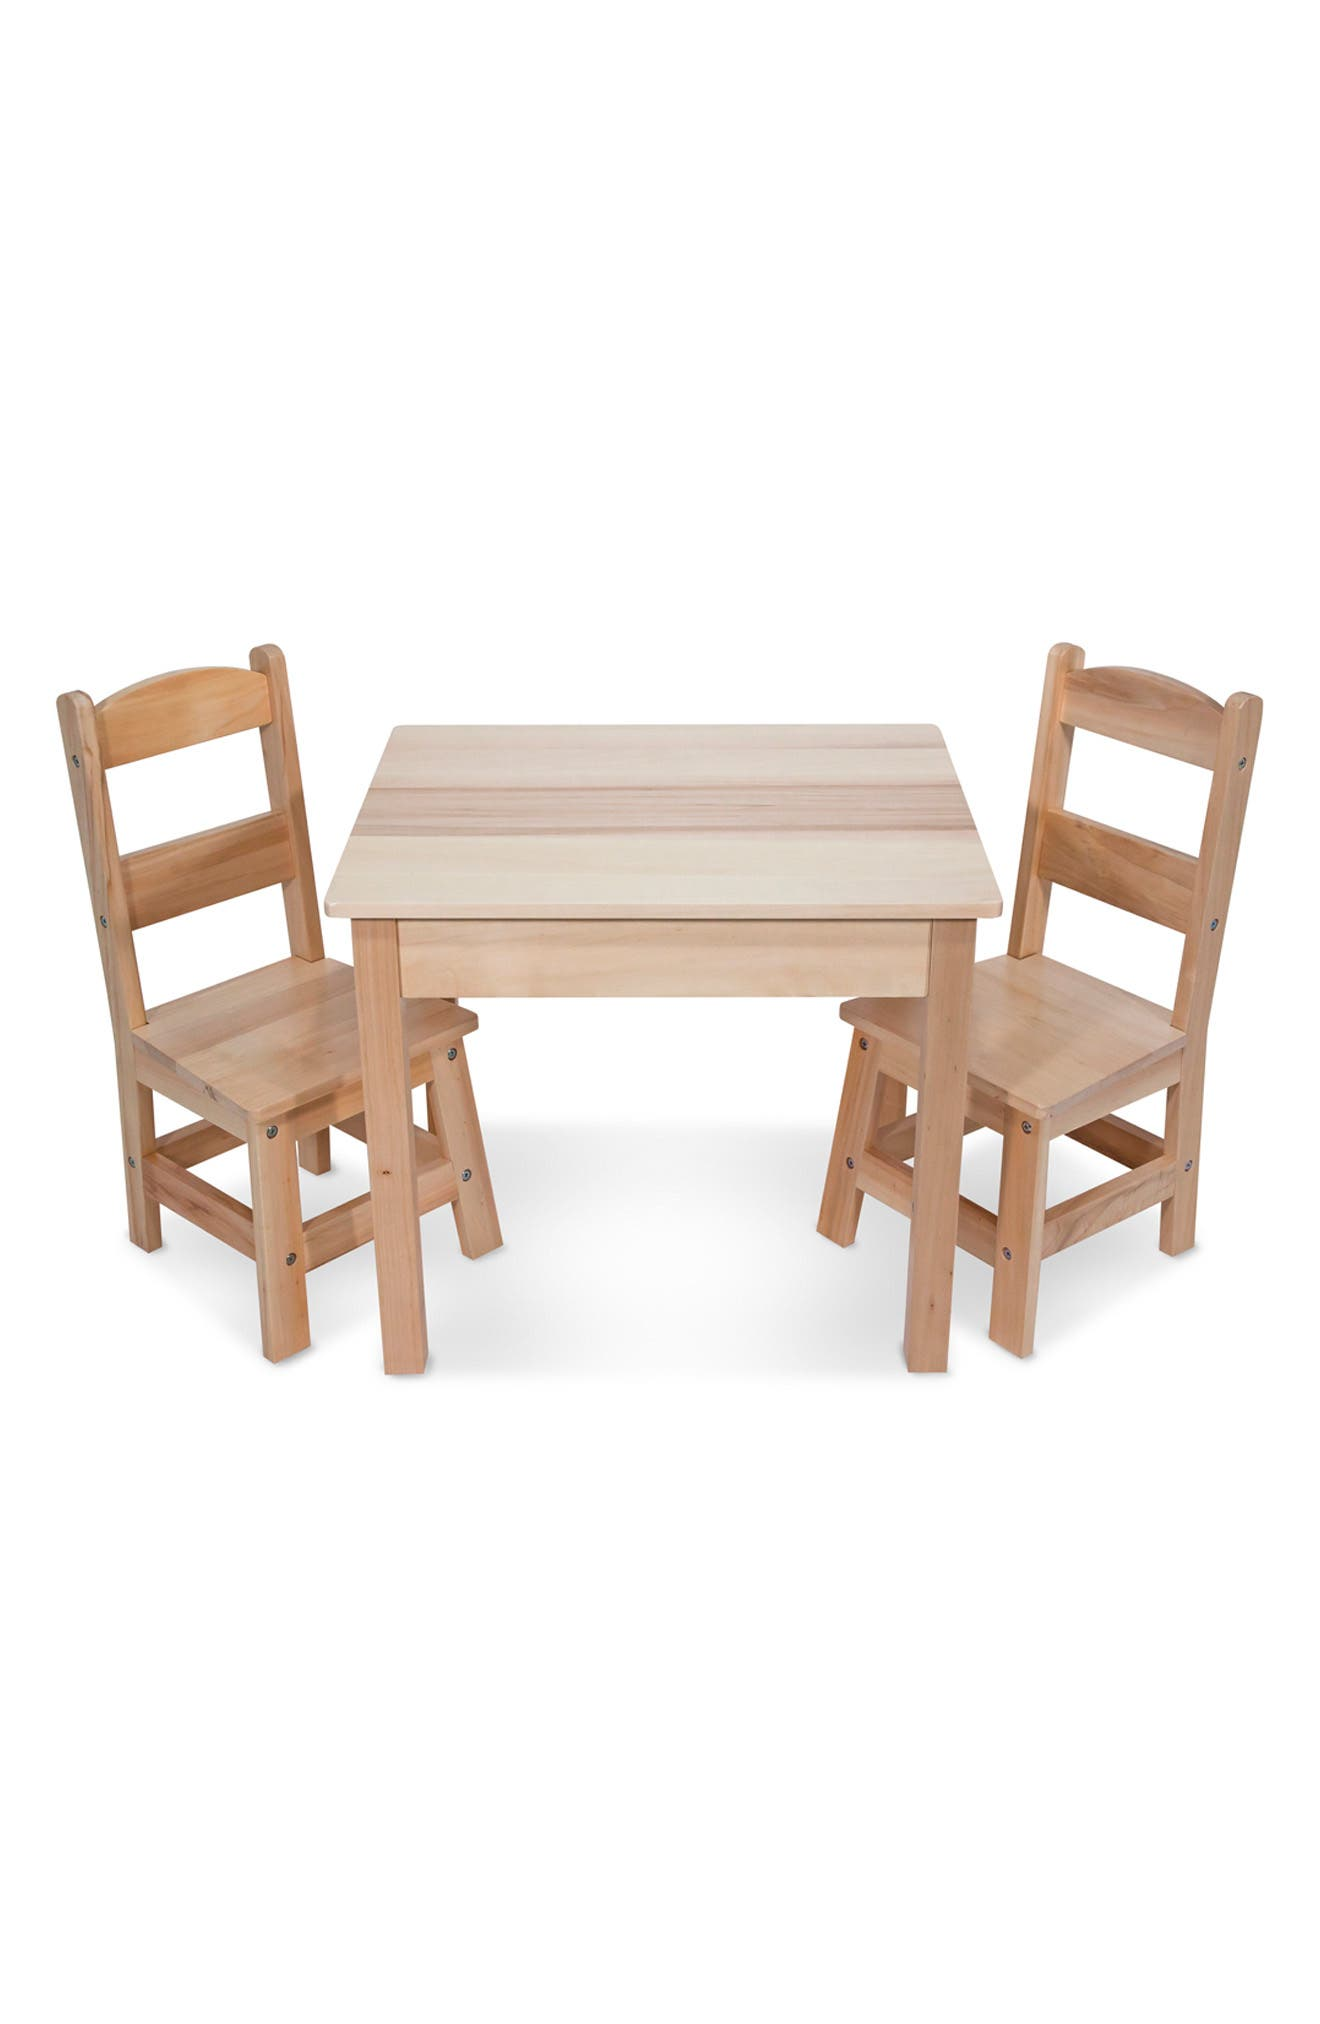 Wooden Table and Chairs Set,                             Alternate thumbnail 2, color,                             200